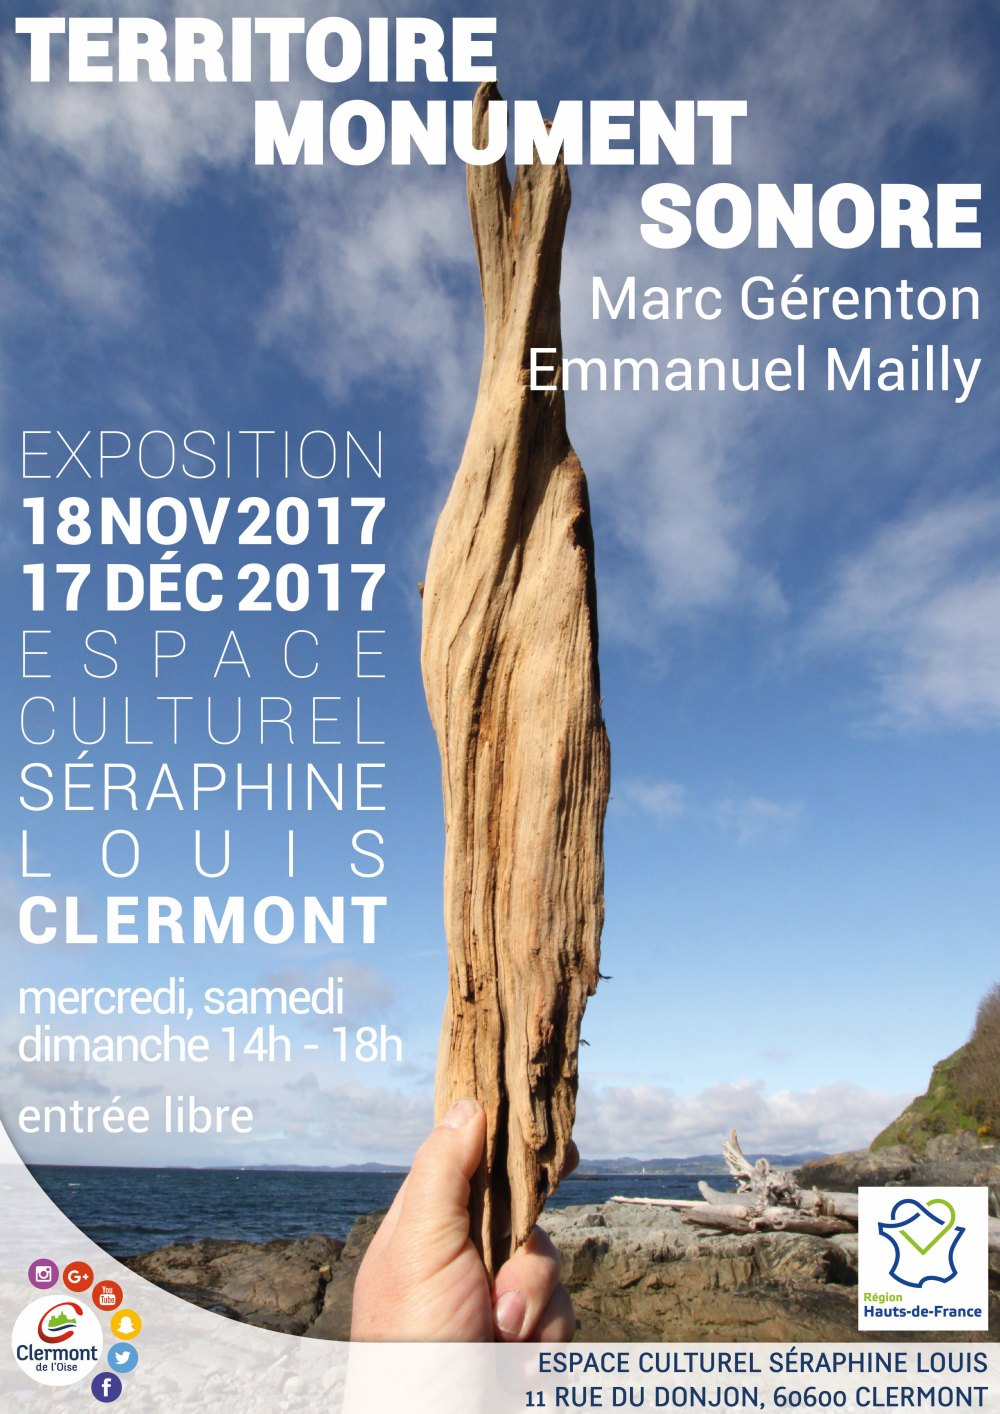 MONUMENT TERRITOIRE SONORE - EXPOSITION - AFFICHE - V2-1